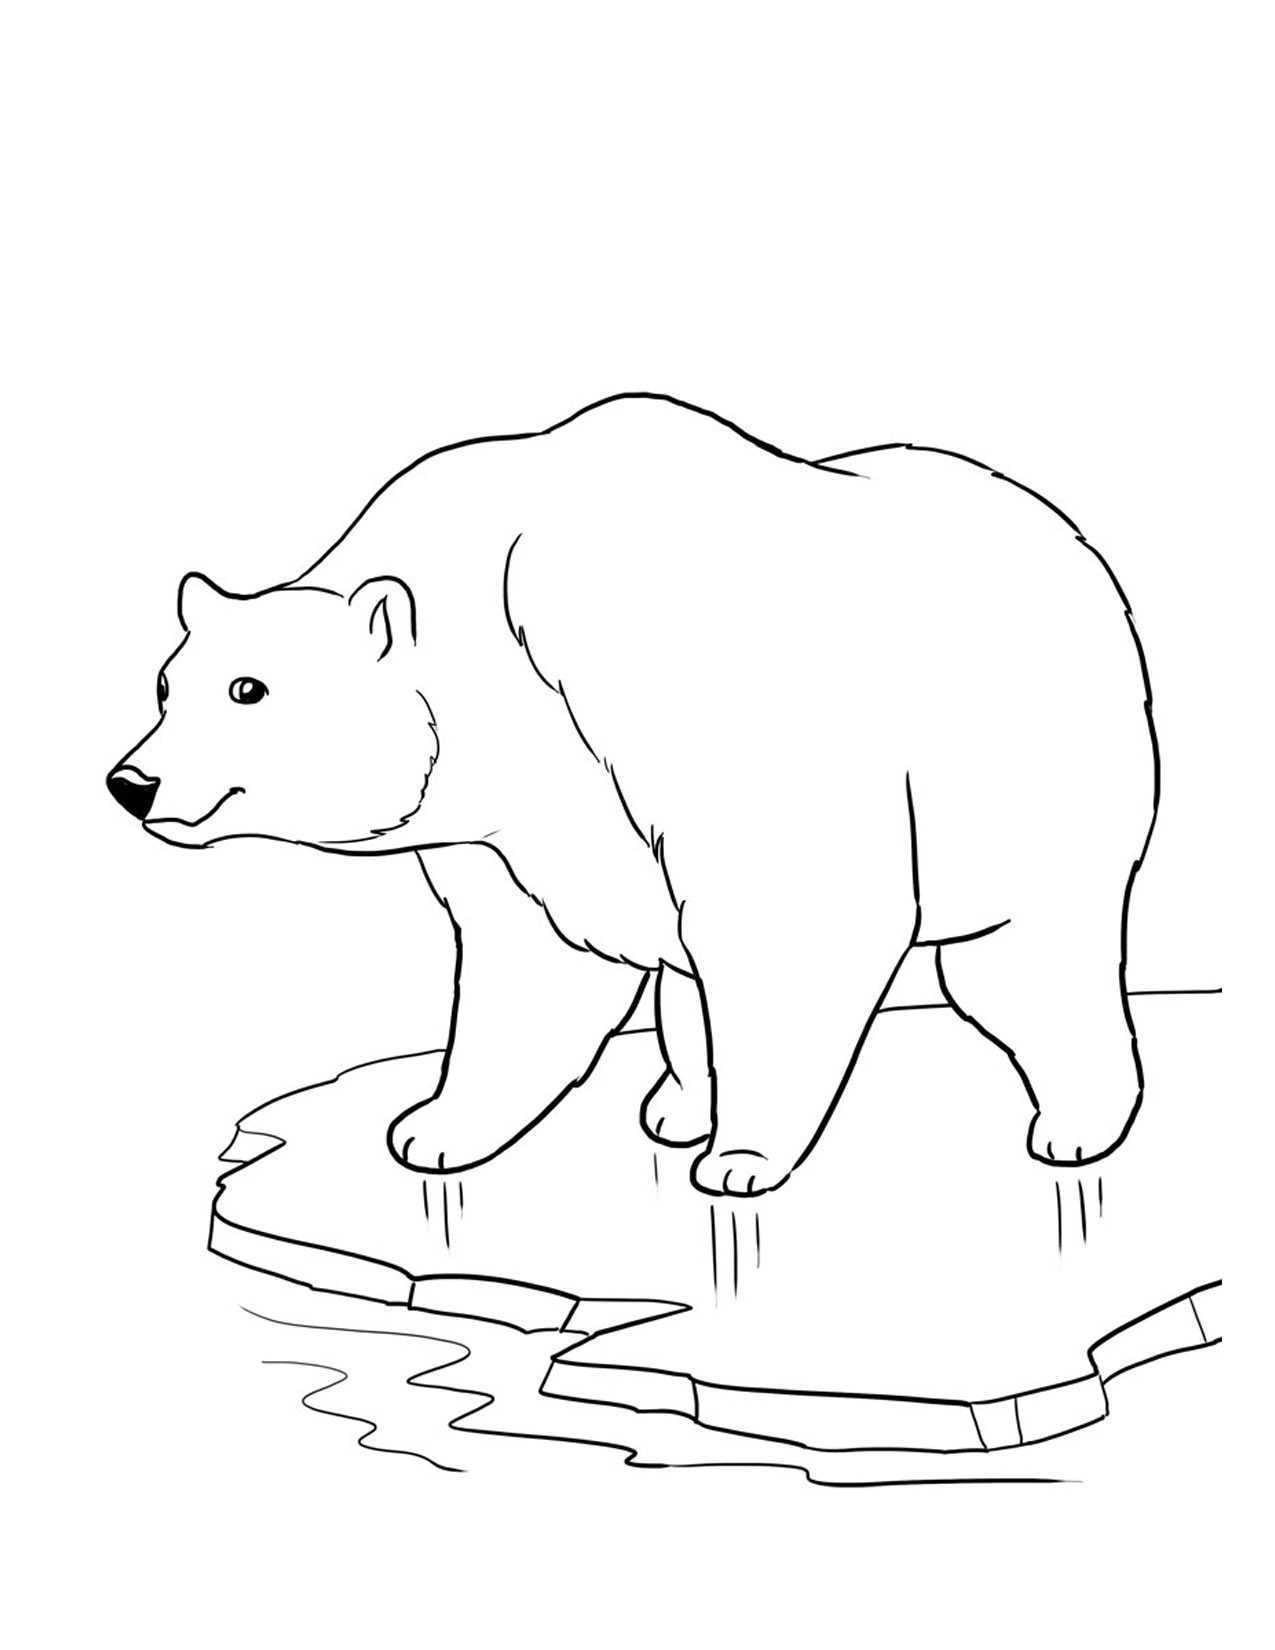 Drawn polar  bear coloring page For bears Animals Animals Coloring